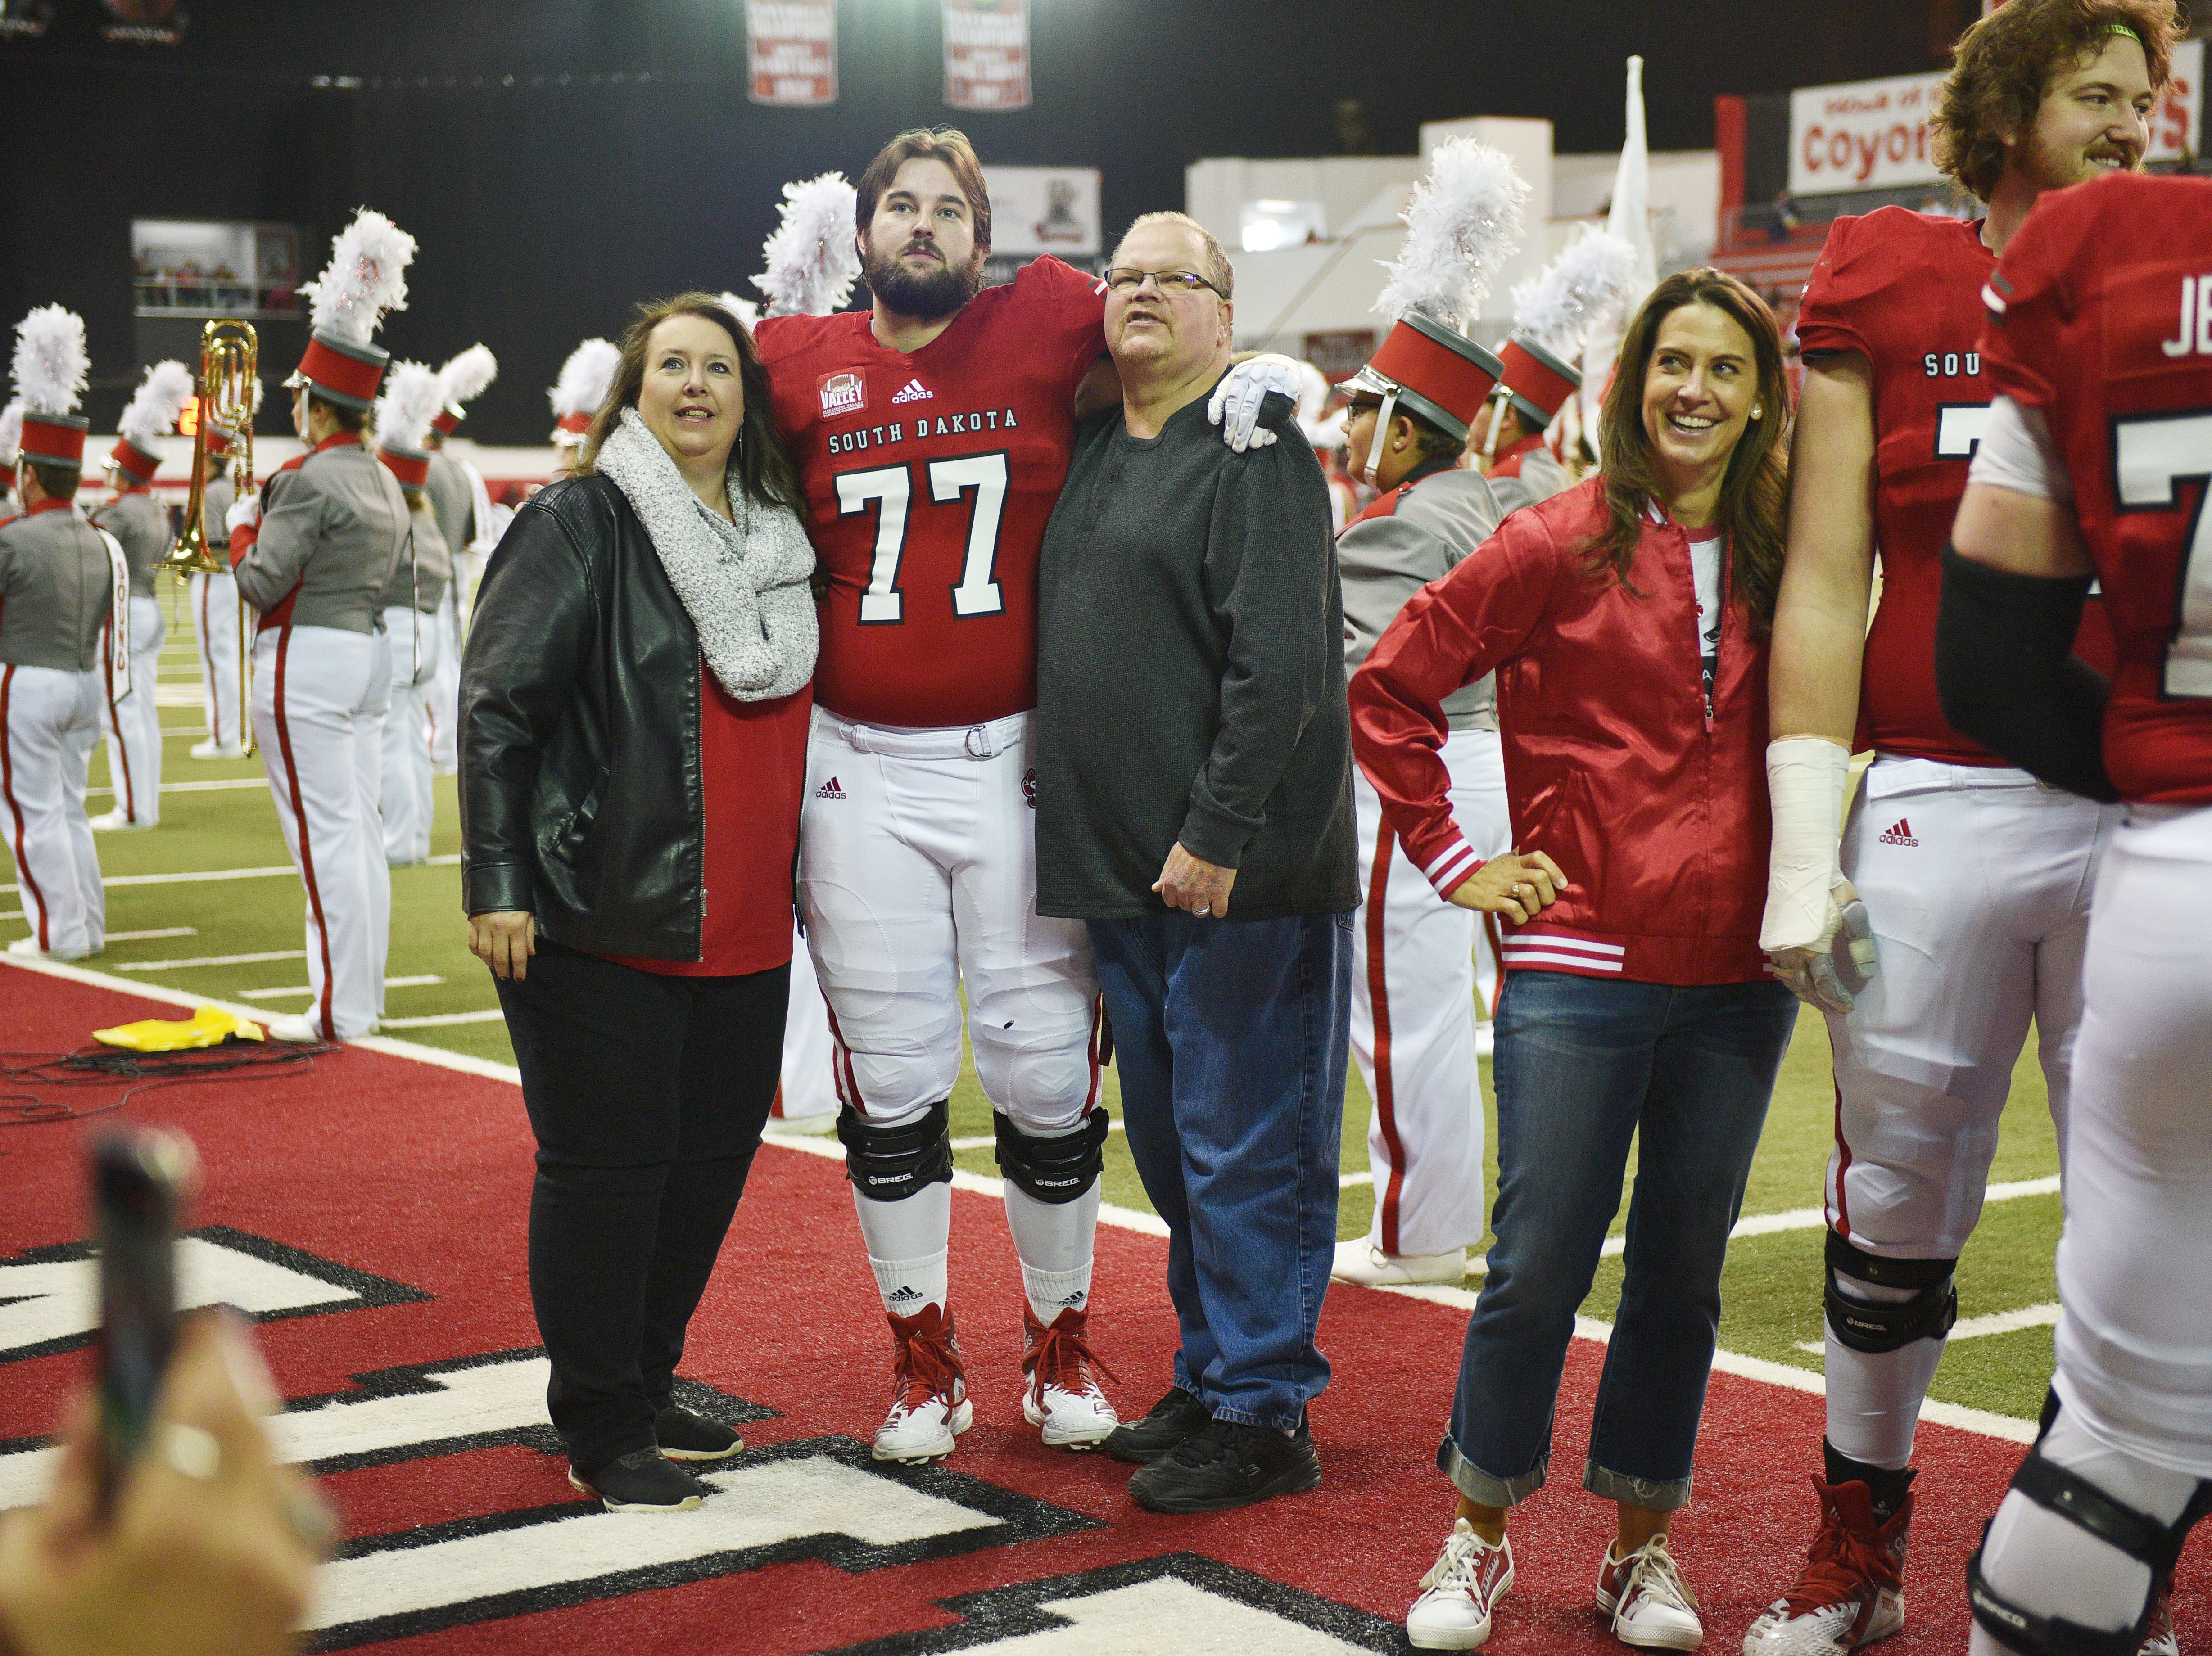 USD's Tanner Anderson celebrates senior night with his parents before going on the field for the game against Western Illinois Saturday, Nov. 10, at the DakotaDome in Vermillion.